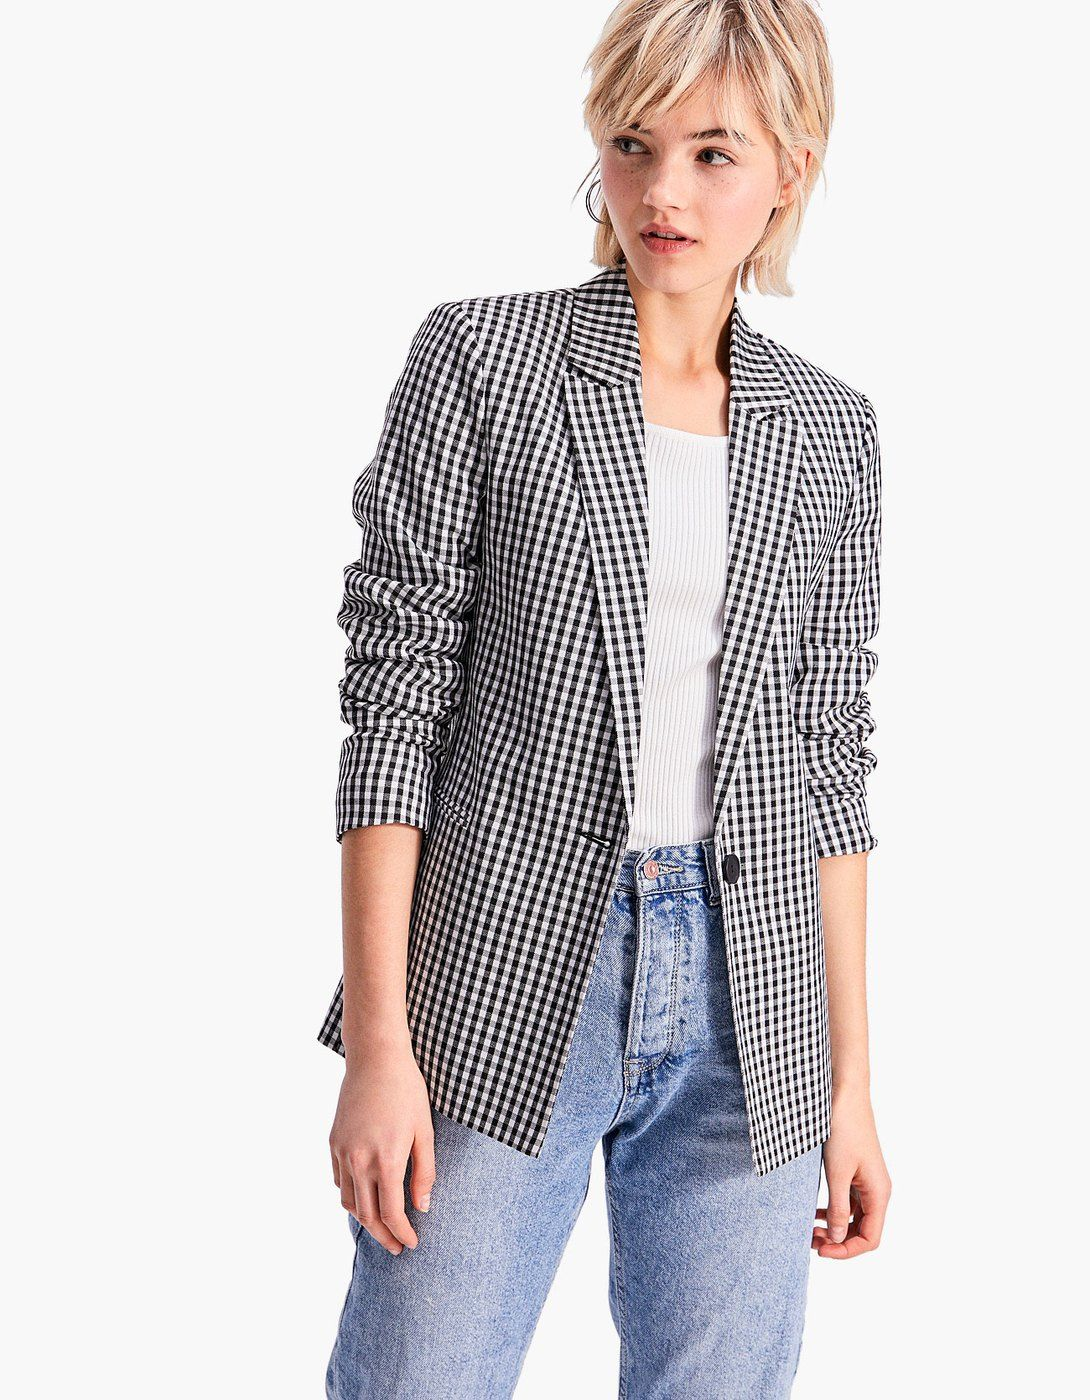 6724461ec4a0 Gingham blazer | Jackets & Coats in 2019 | Blazer outfits, Fashion ...